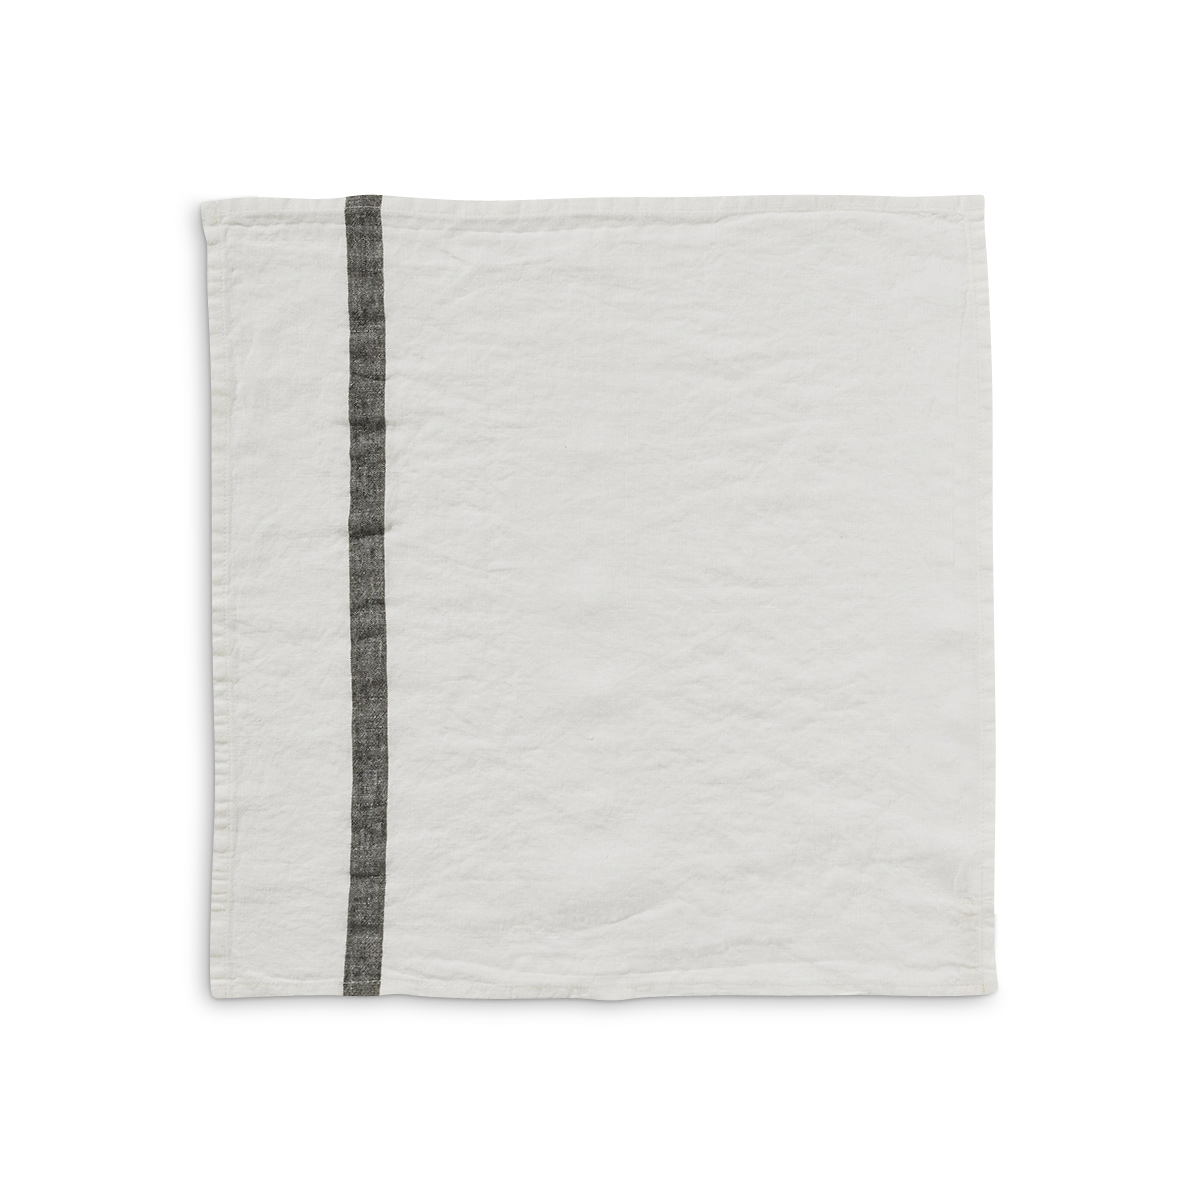 Napkin clipart white linen. Png images free download